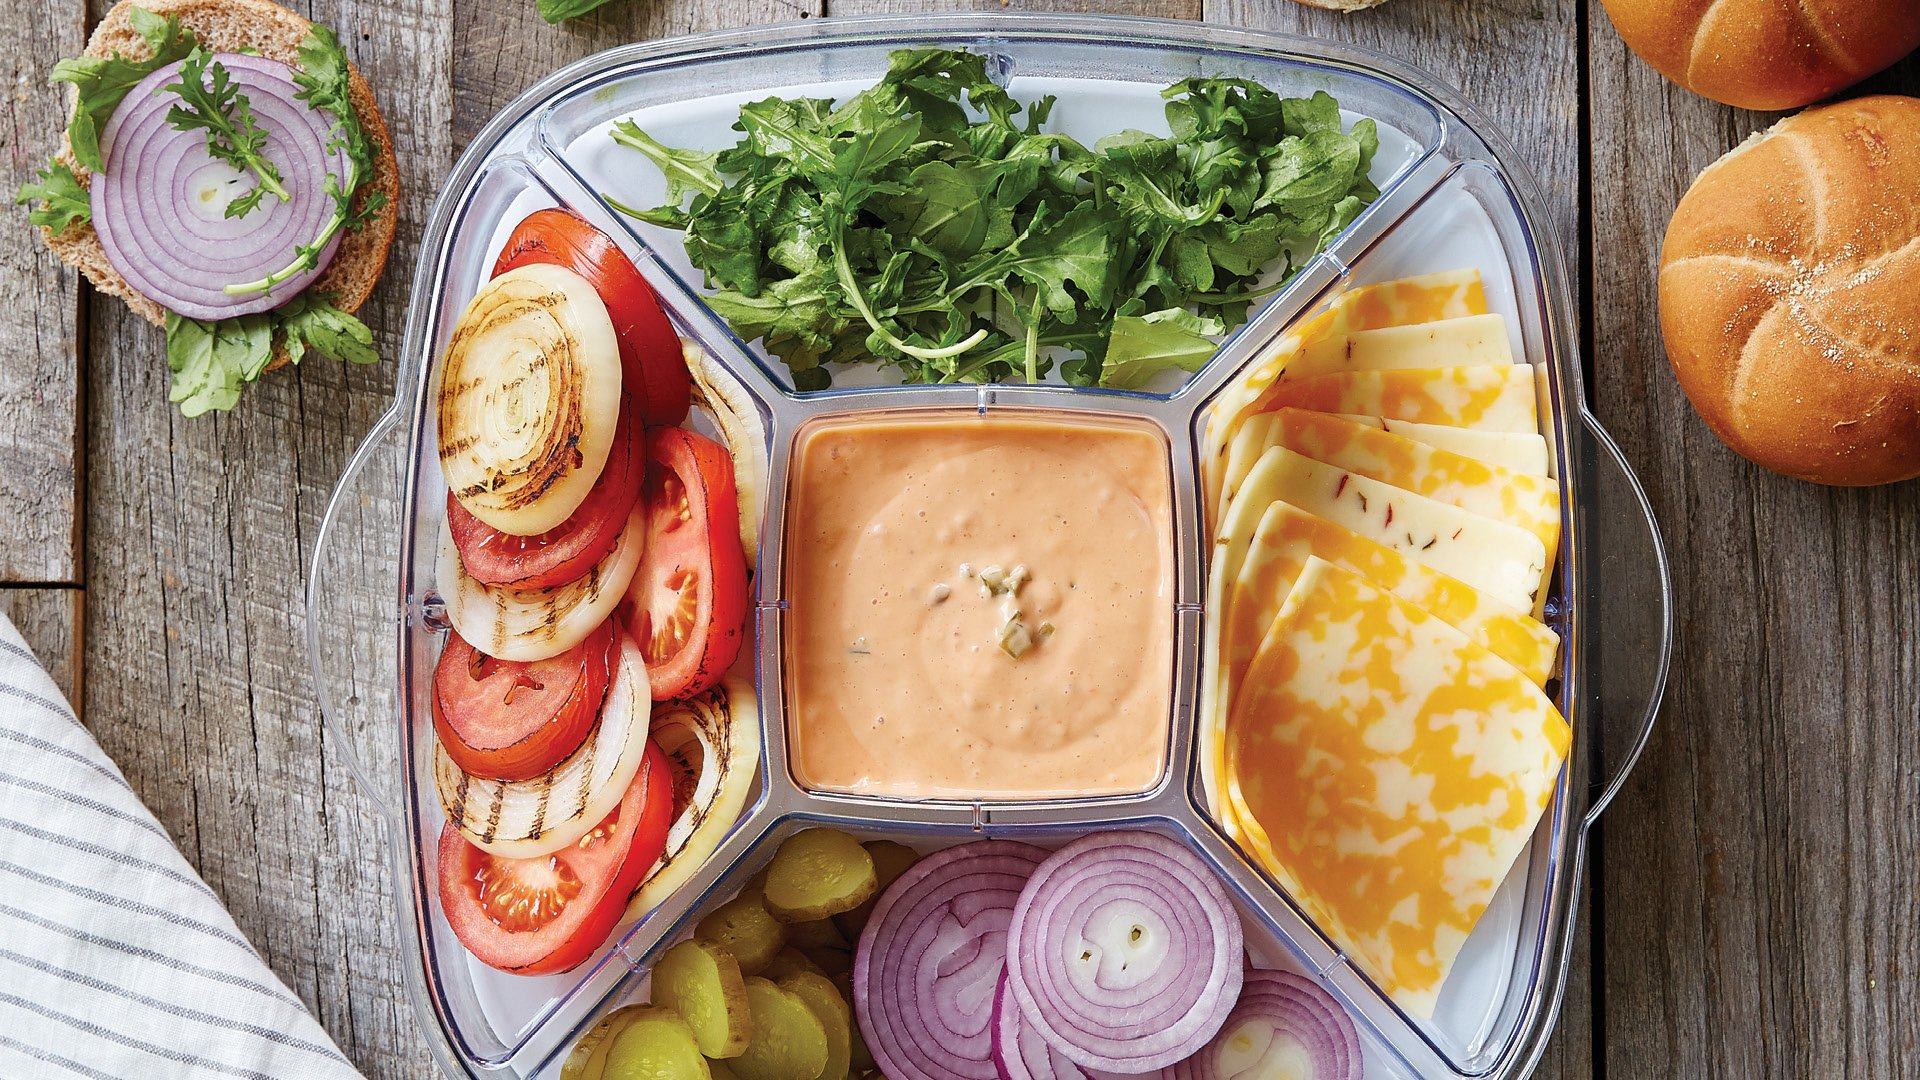 toppings for burgers in a chilled serving dish